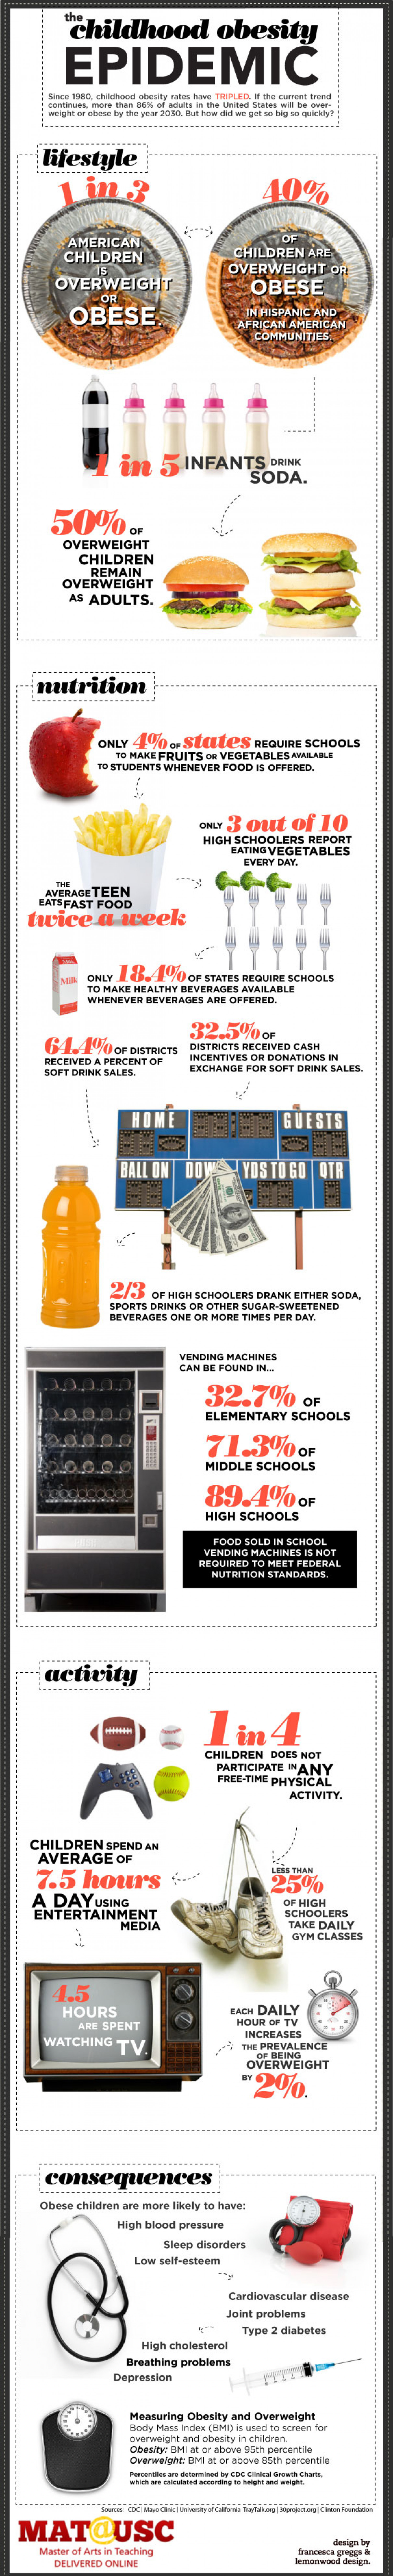 Celebrate National School Lunch Week 2011 Infographic